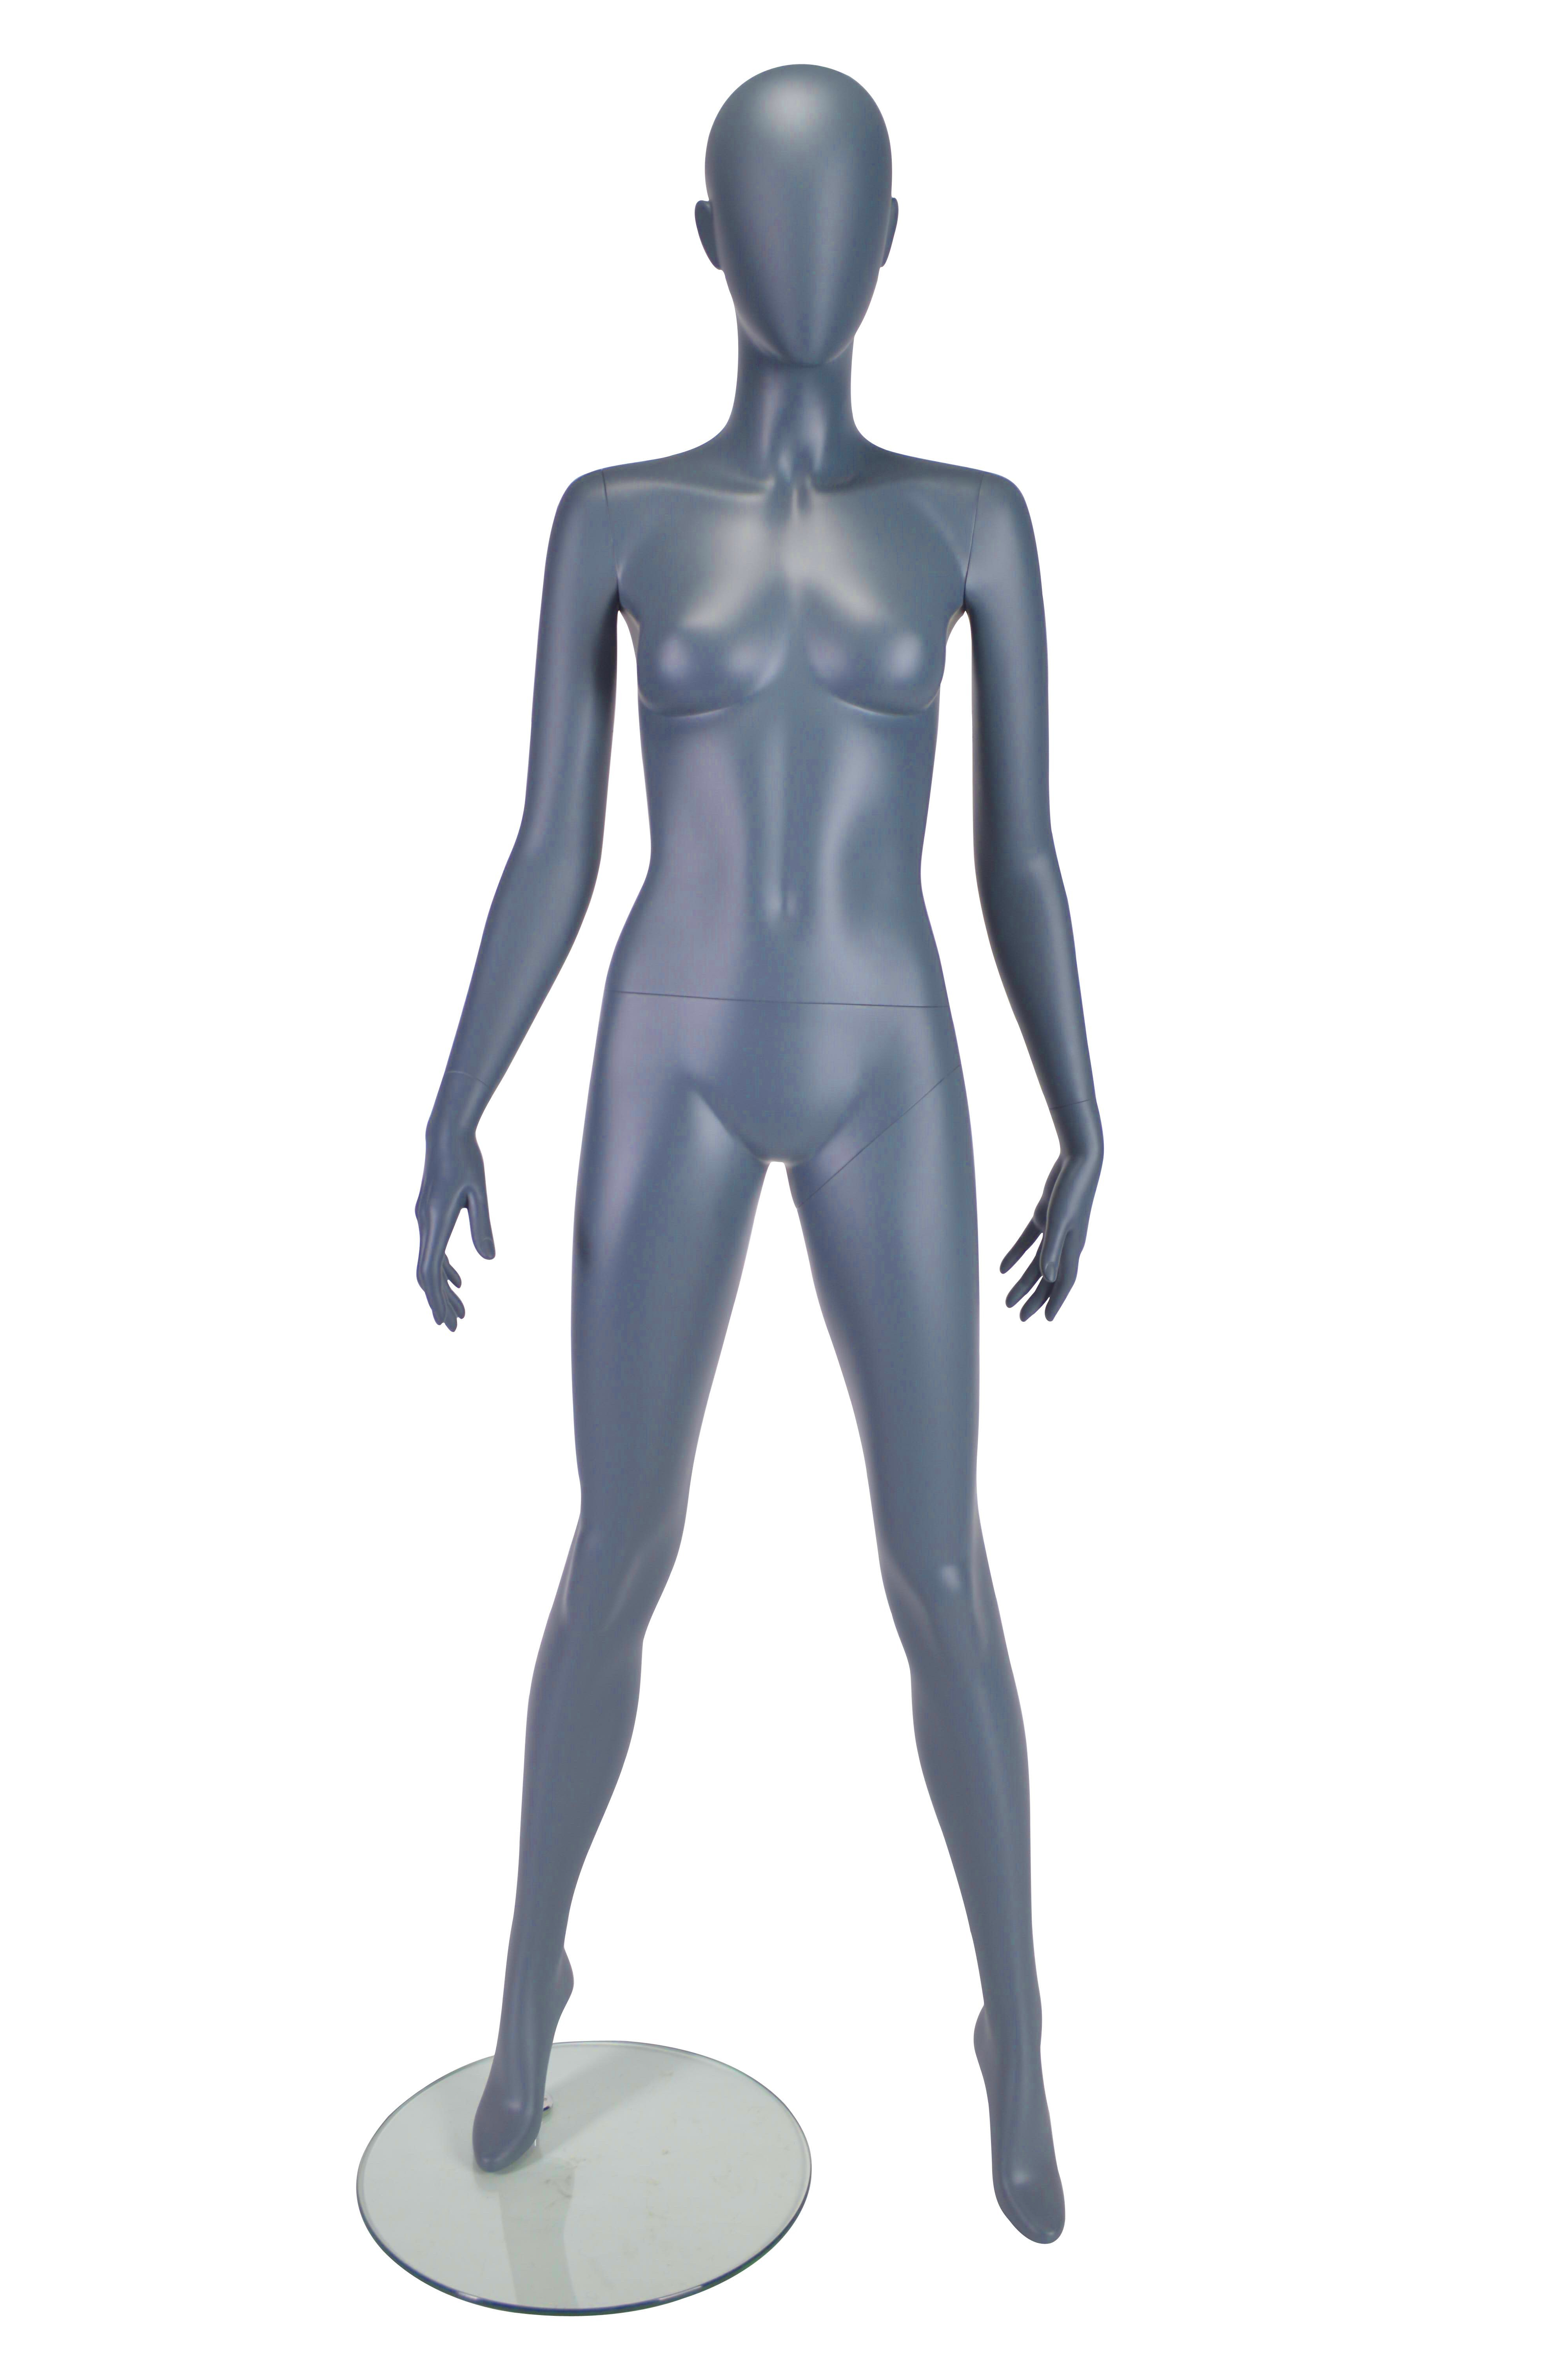 HB1002178 - Female Mannequin Hands by Side - Matt Grey